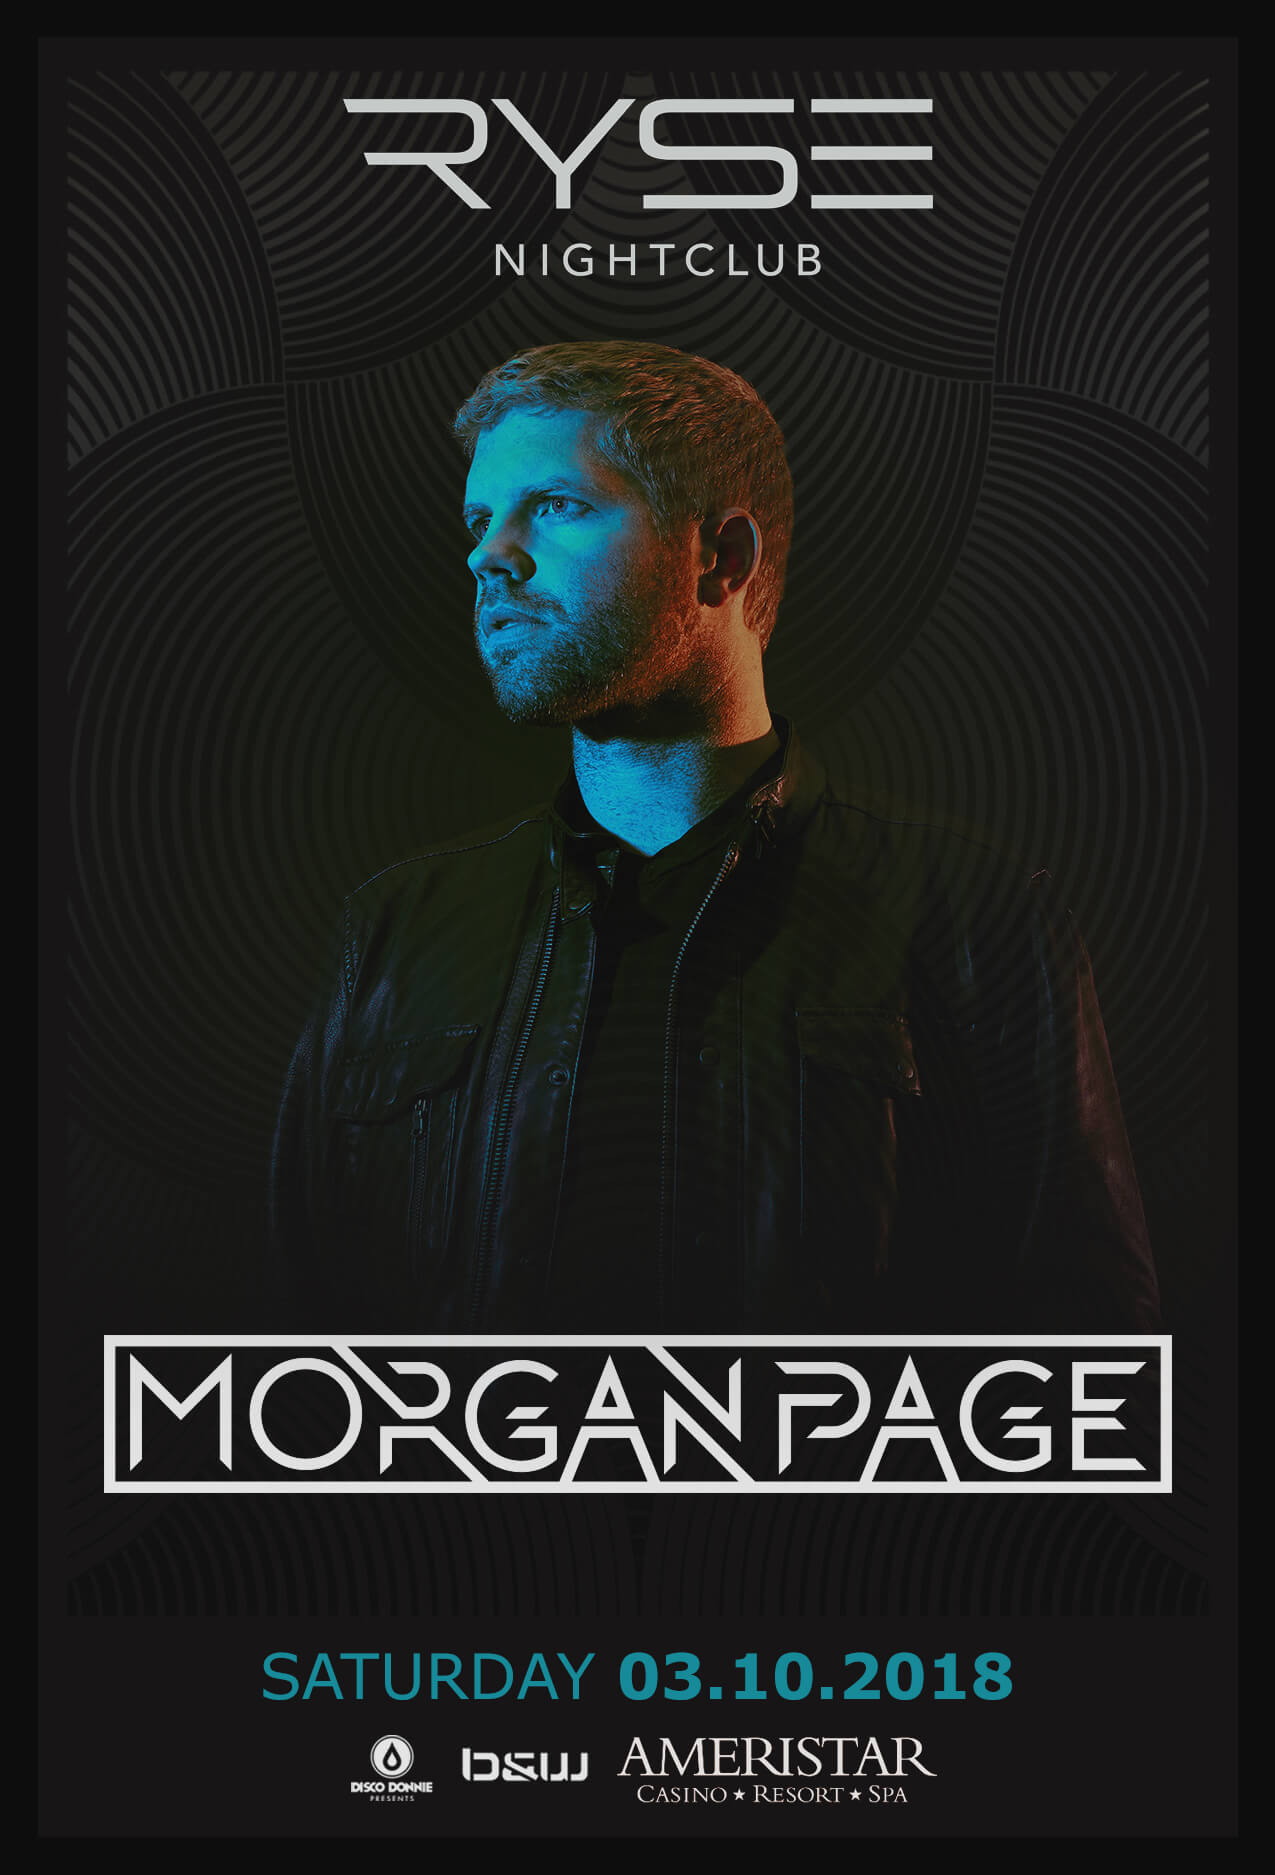 Morgan Page in St Charles